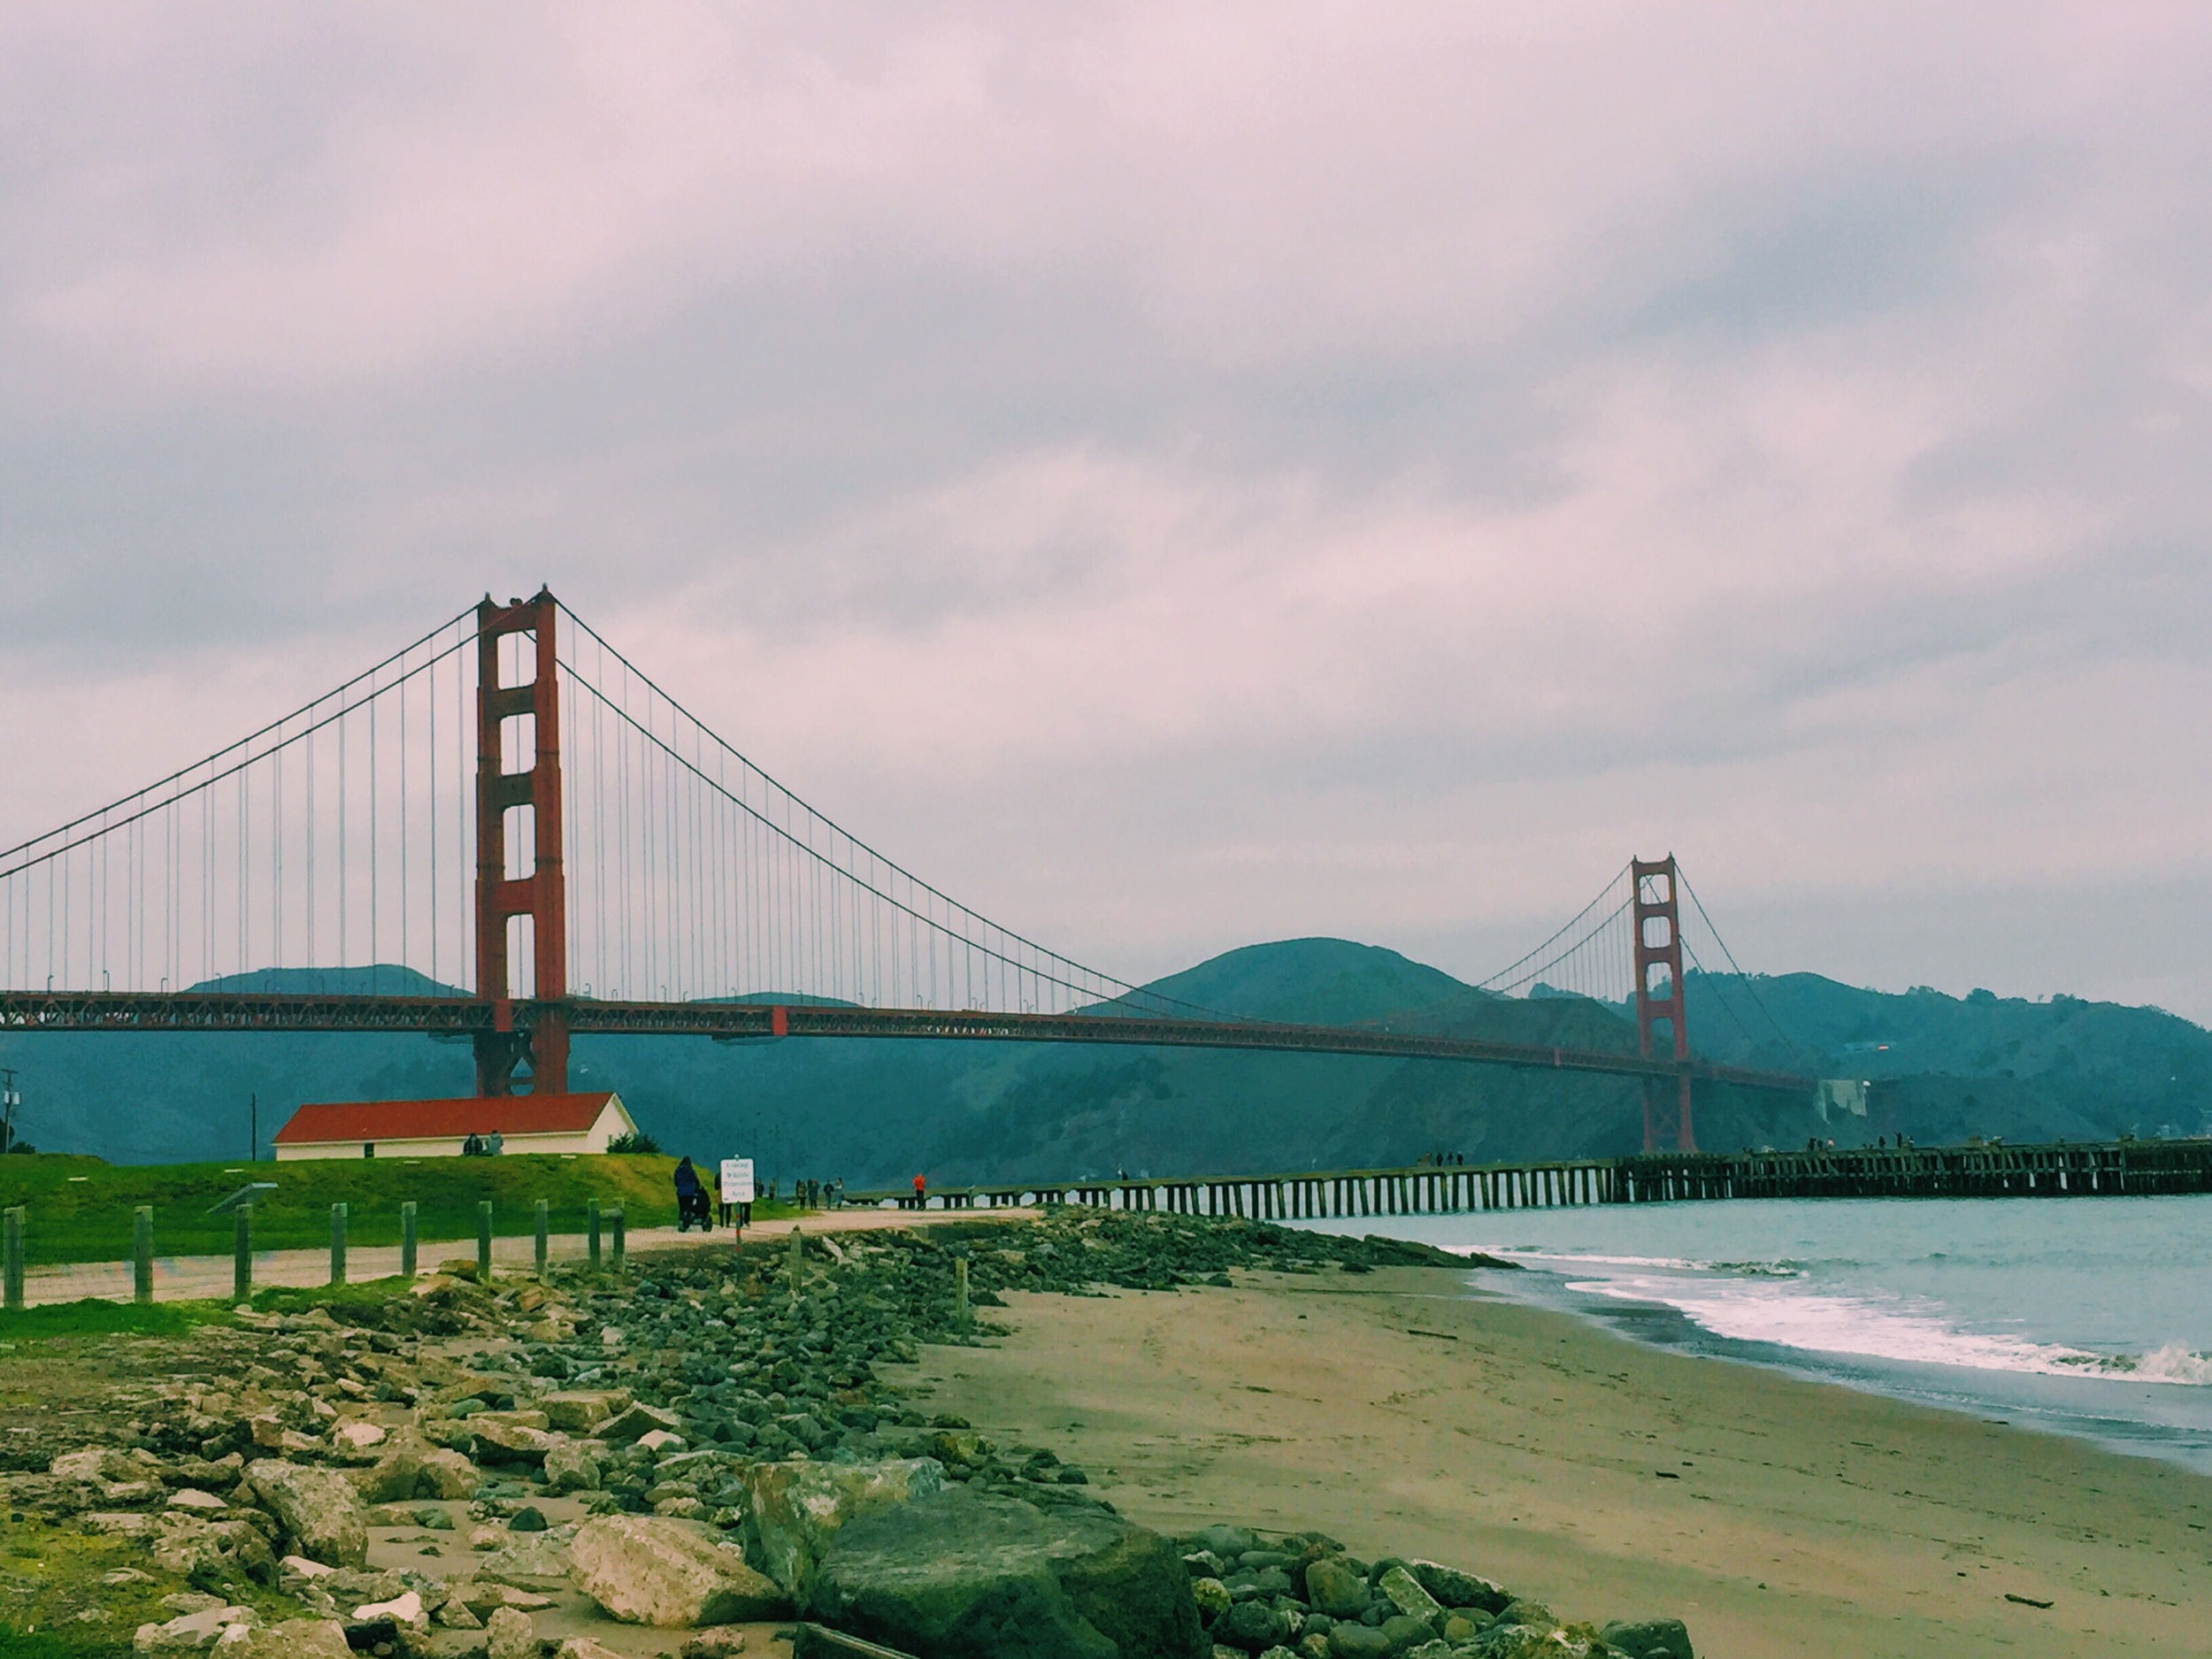 San_Francisco_Travel_Blog.jpg